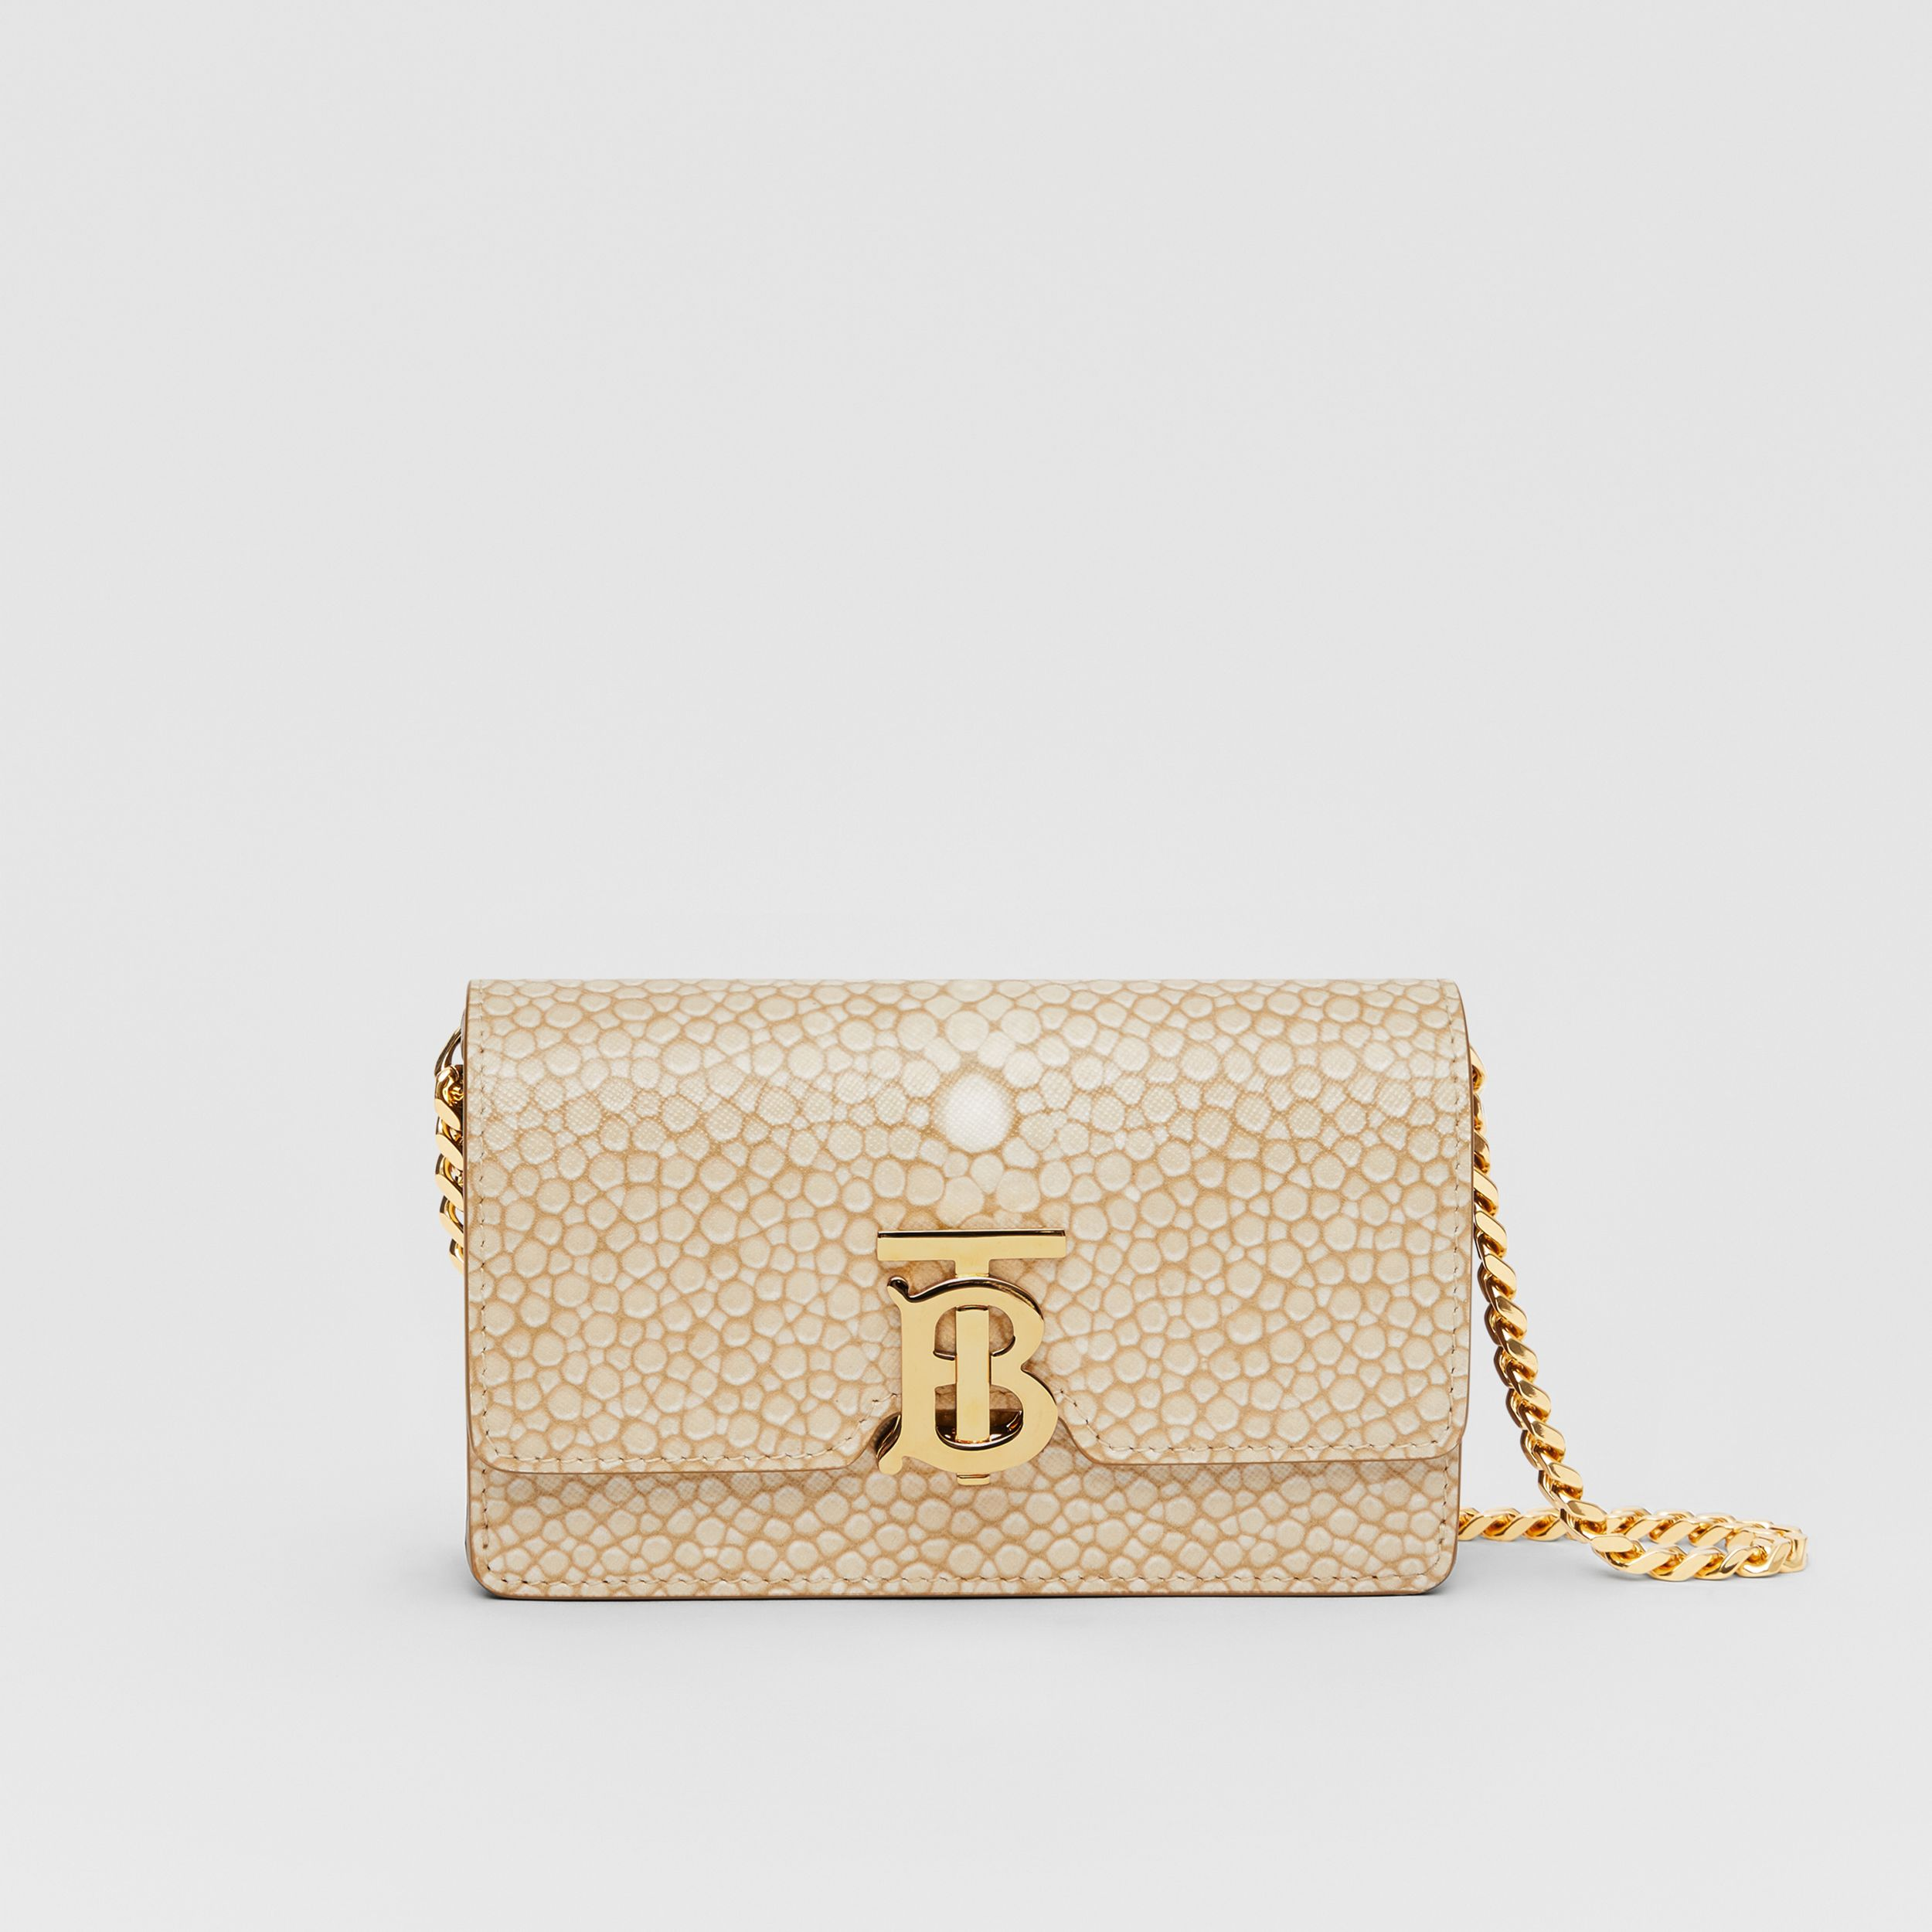 Mini Fish-scale Print Leather Shoulder Bag in Light Sand - Women | Burberry - 1